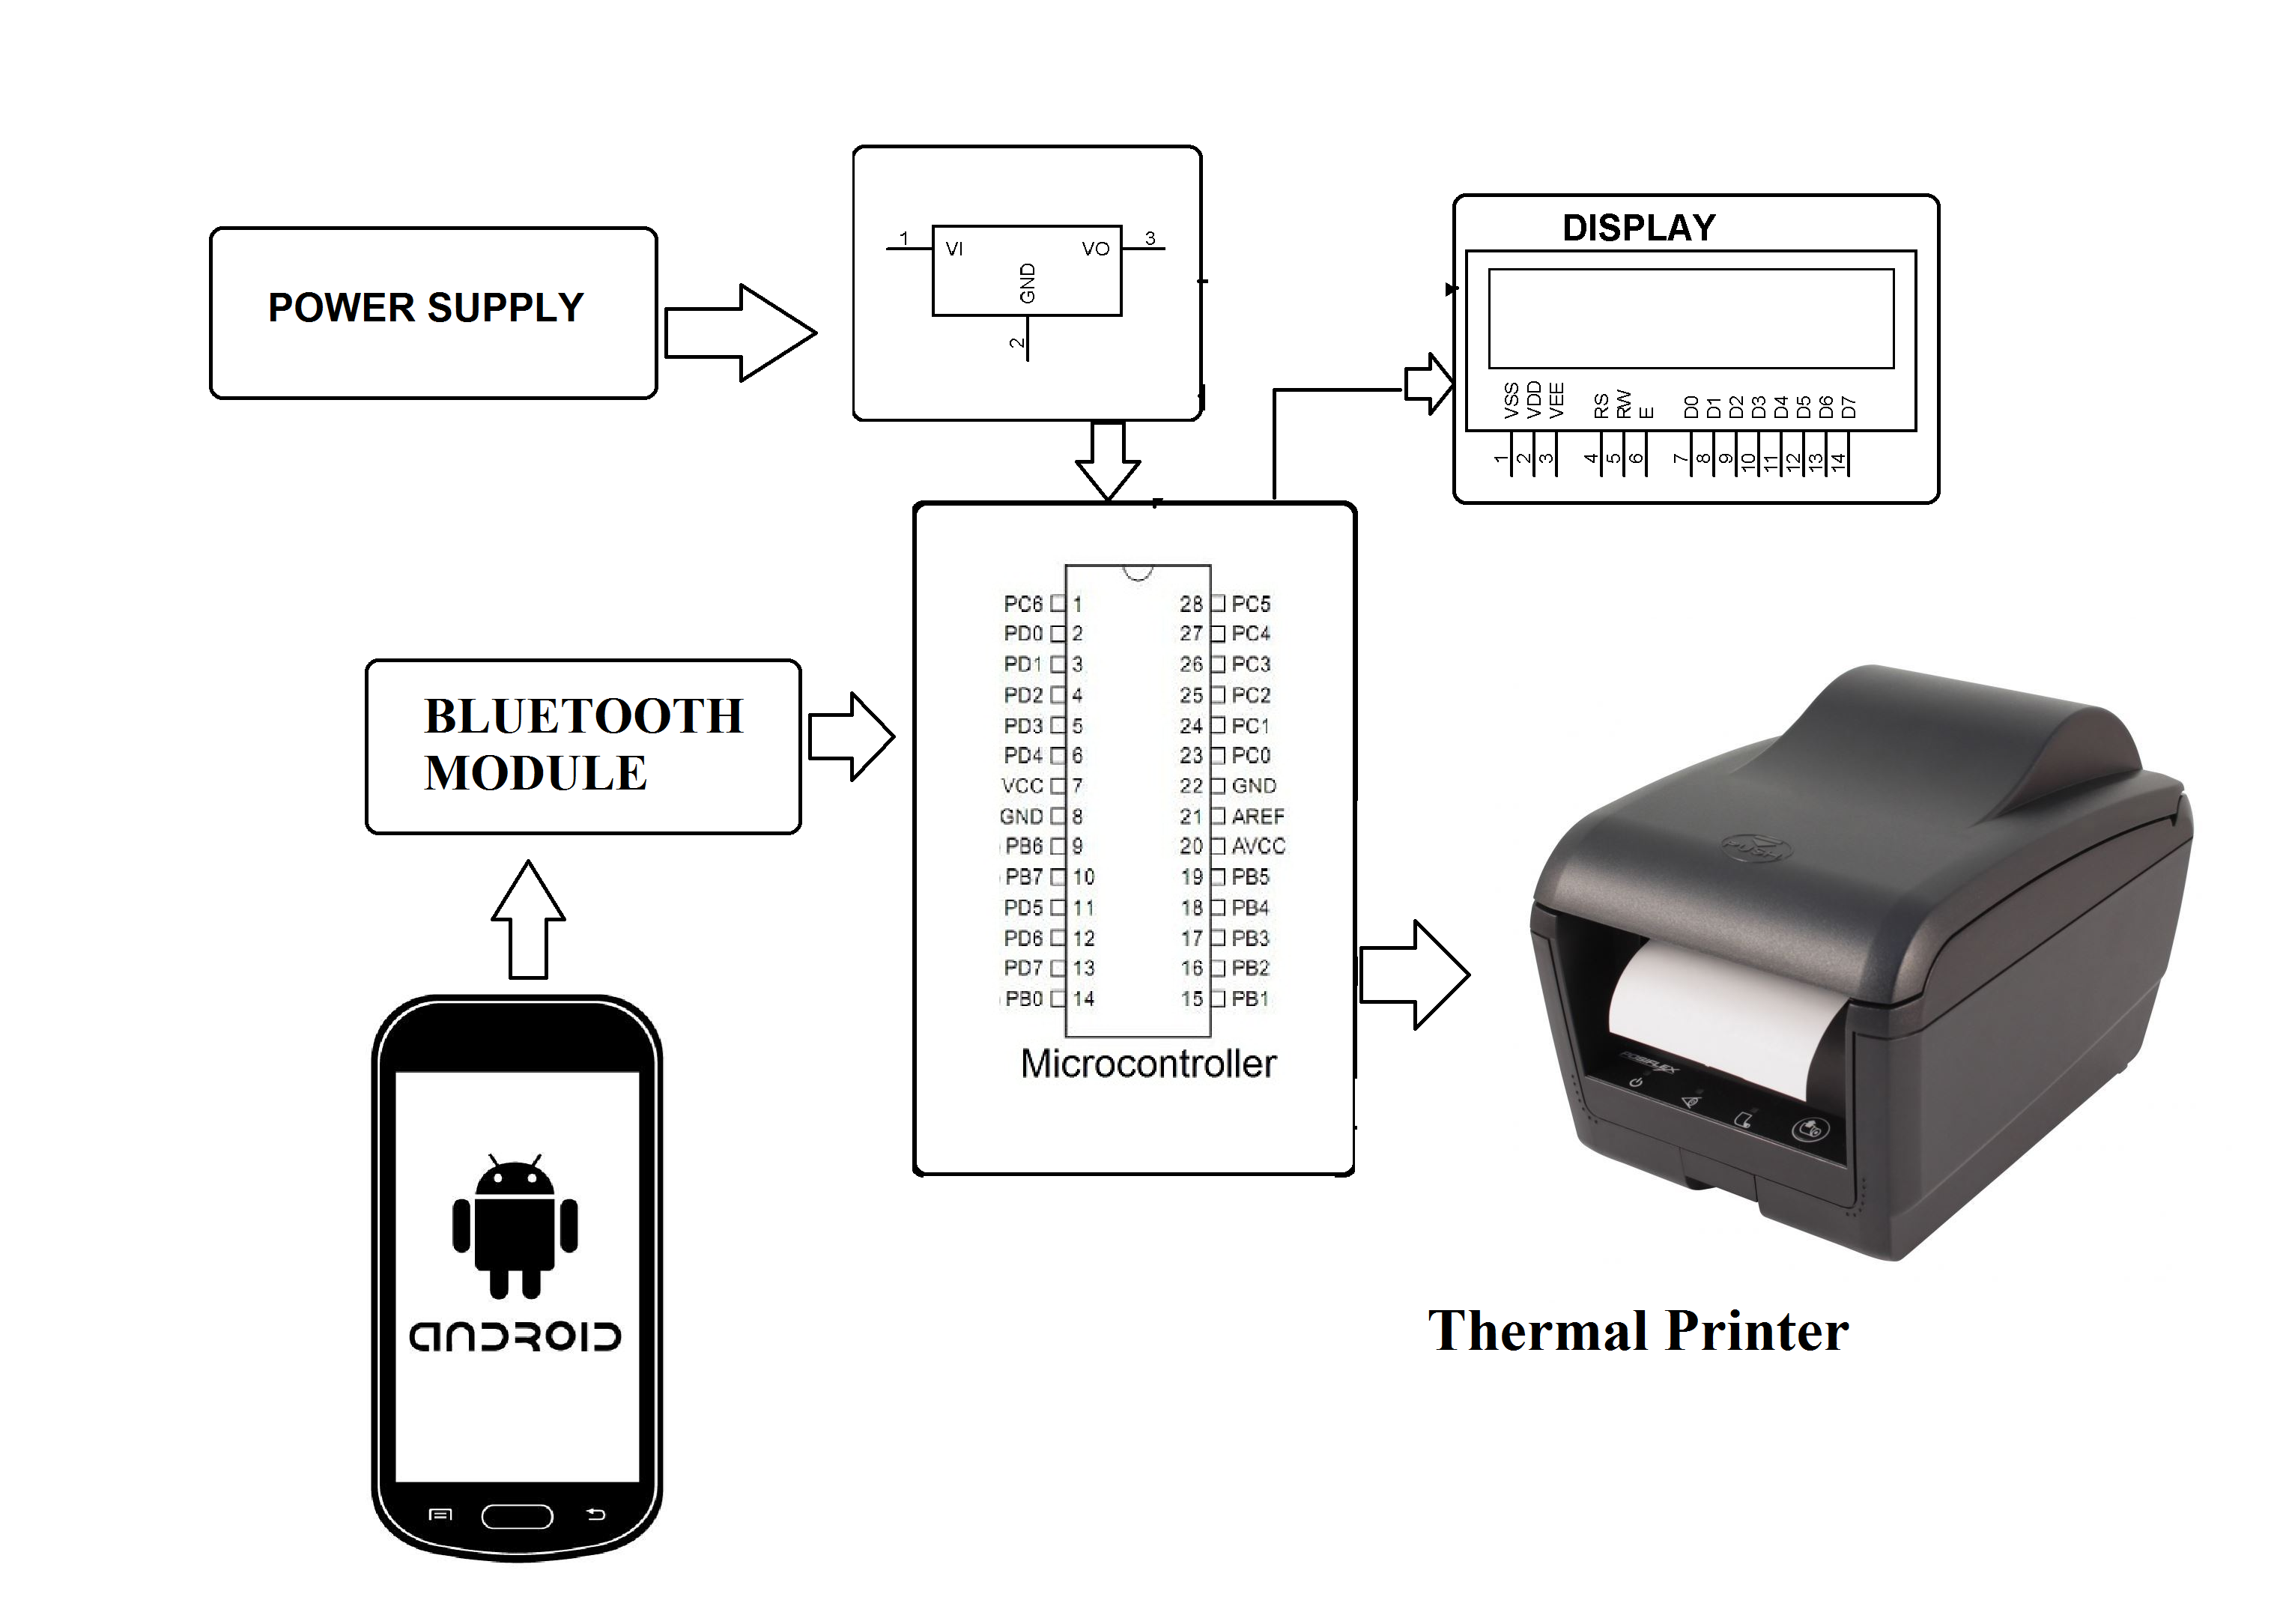 Portable Bluetooth Printer Project Wiring Diagram For Wireless Block